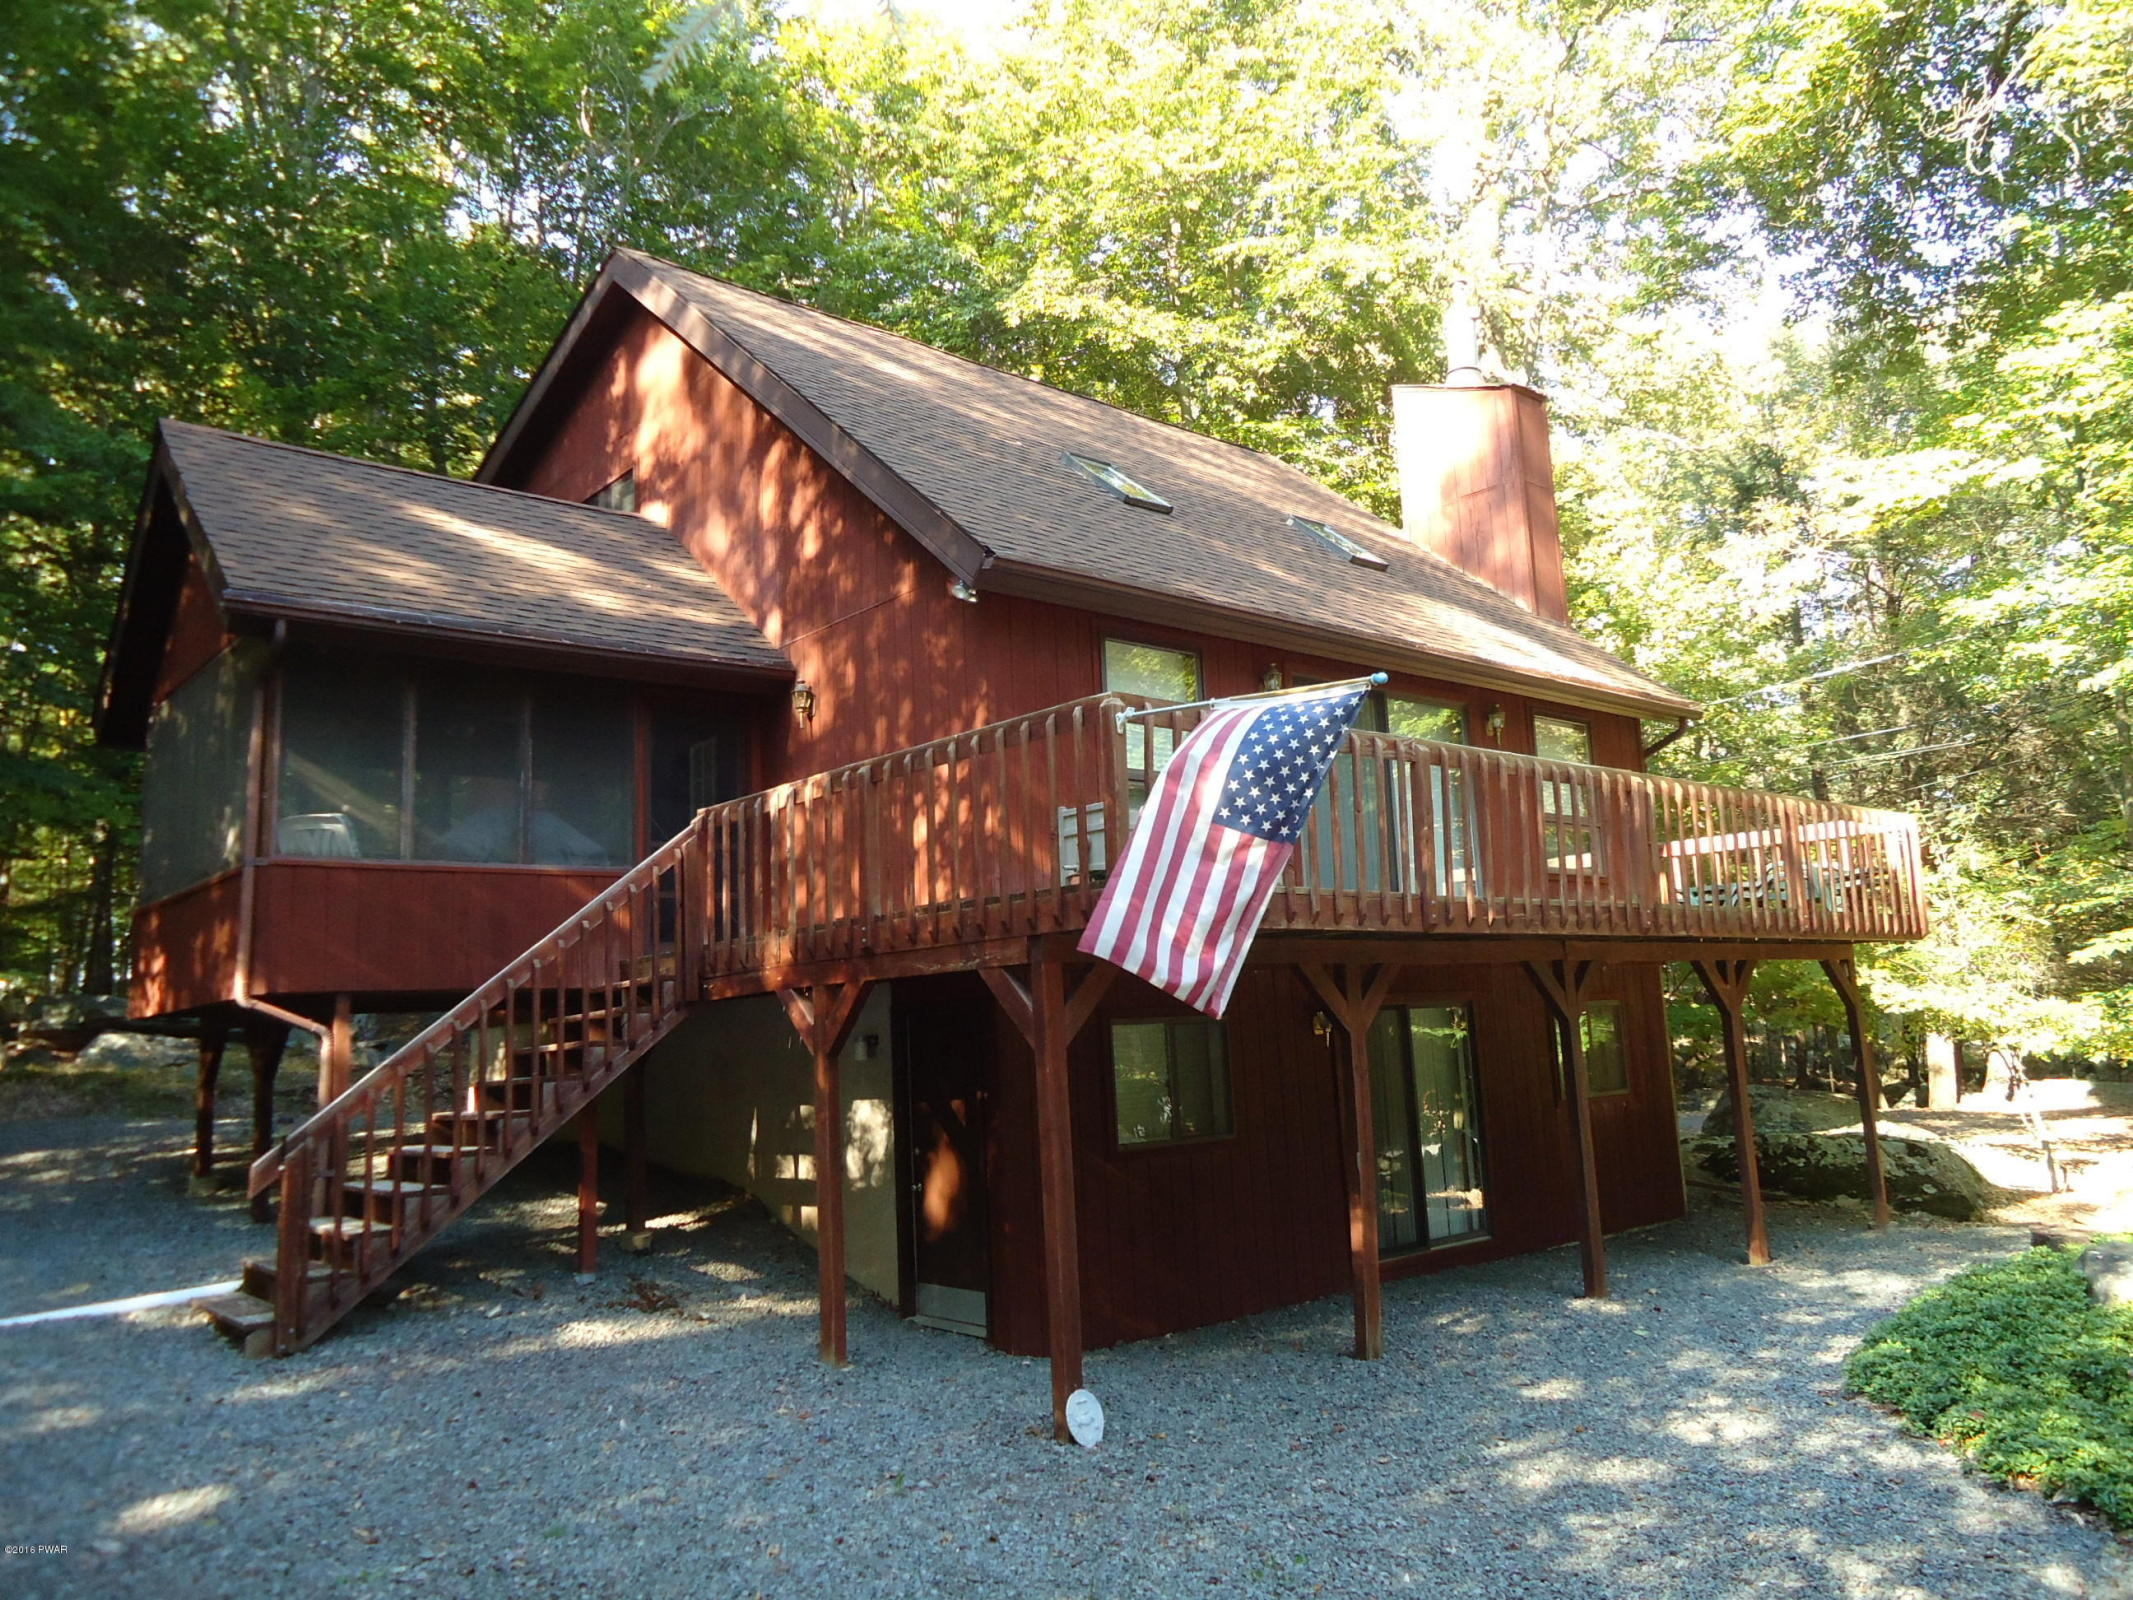 659 Lakeview Drive- Must-See Saltbox in The Hideout, Lake Ariel PA